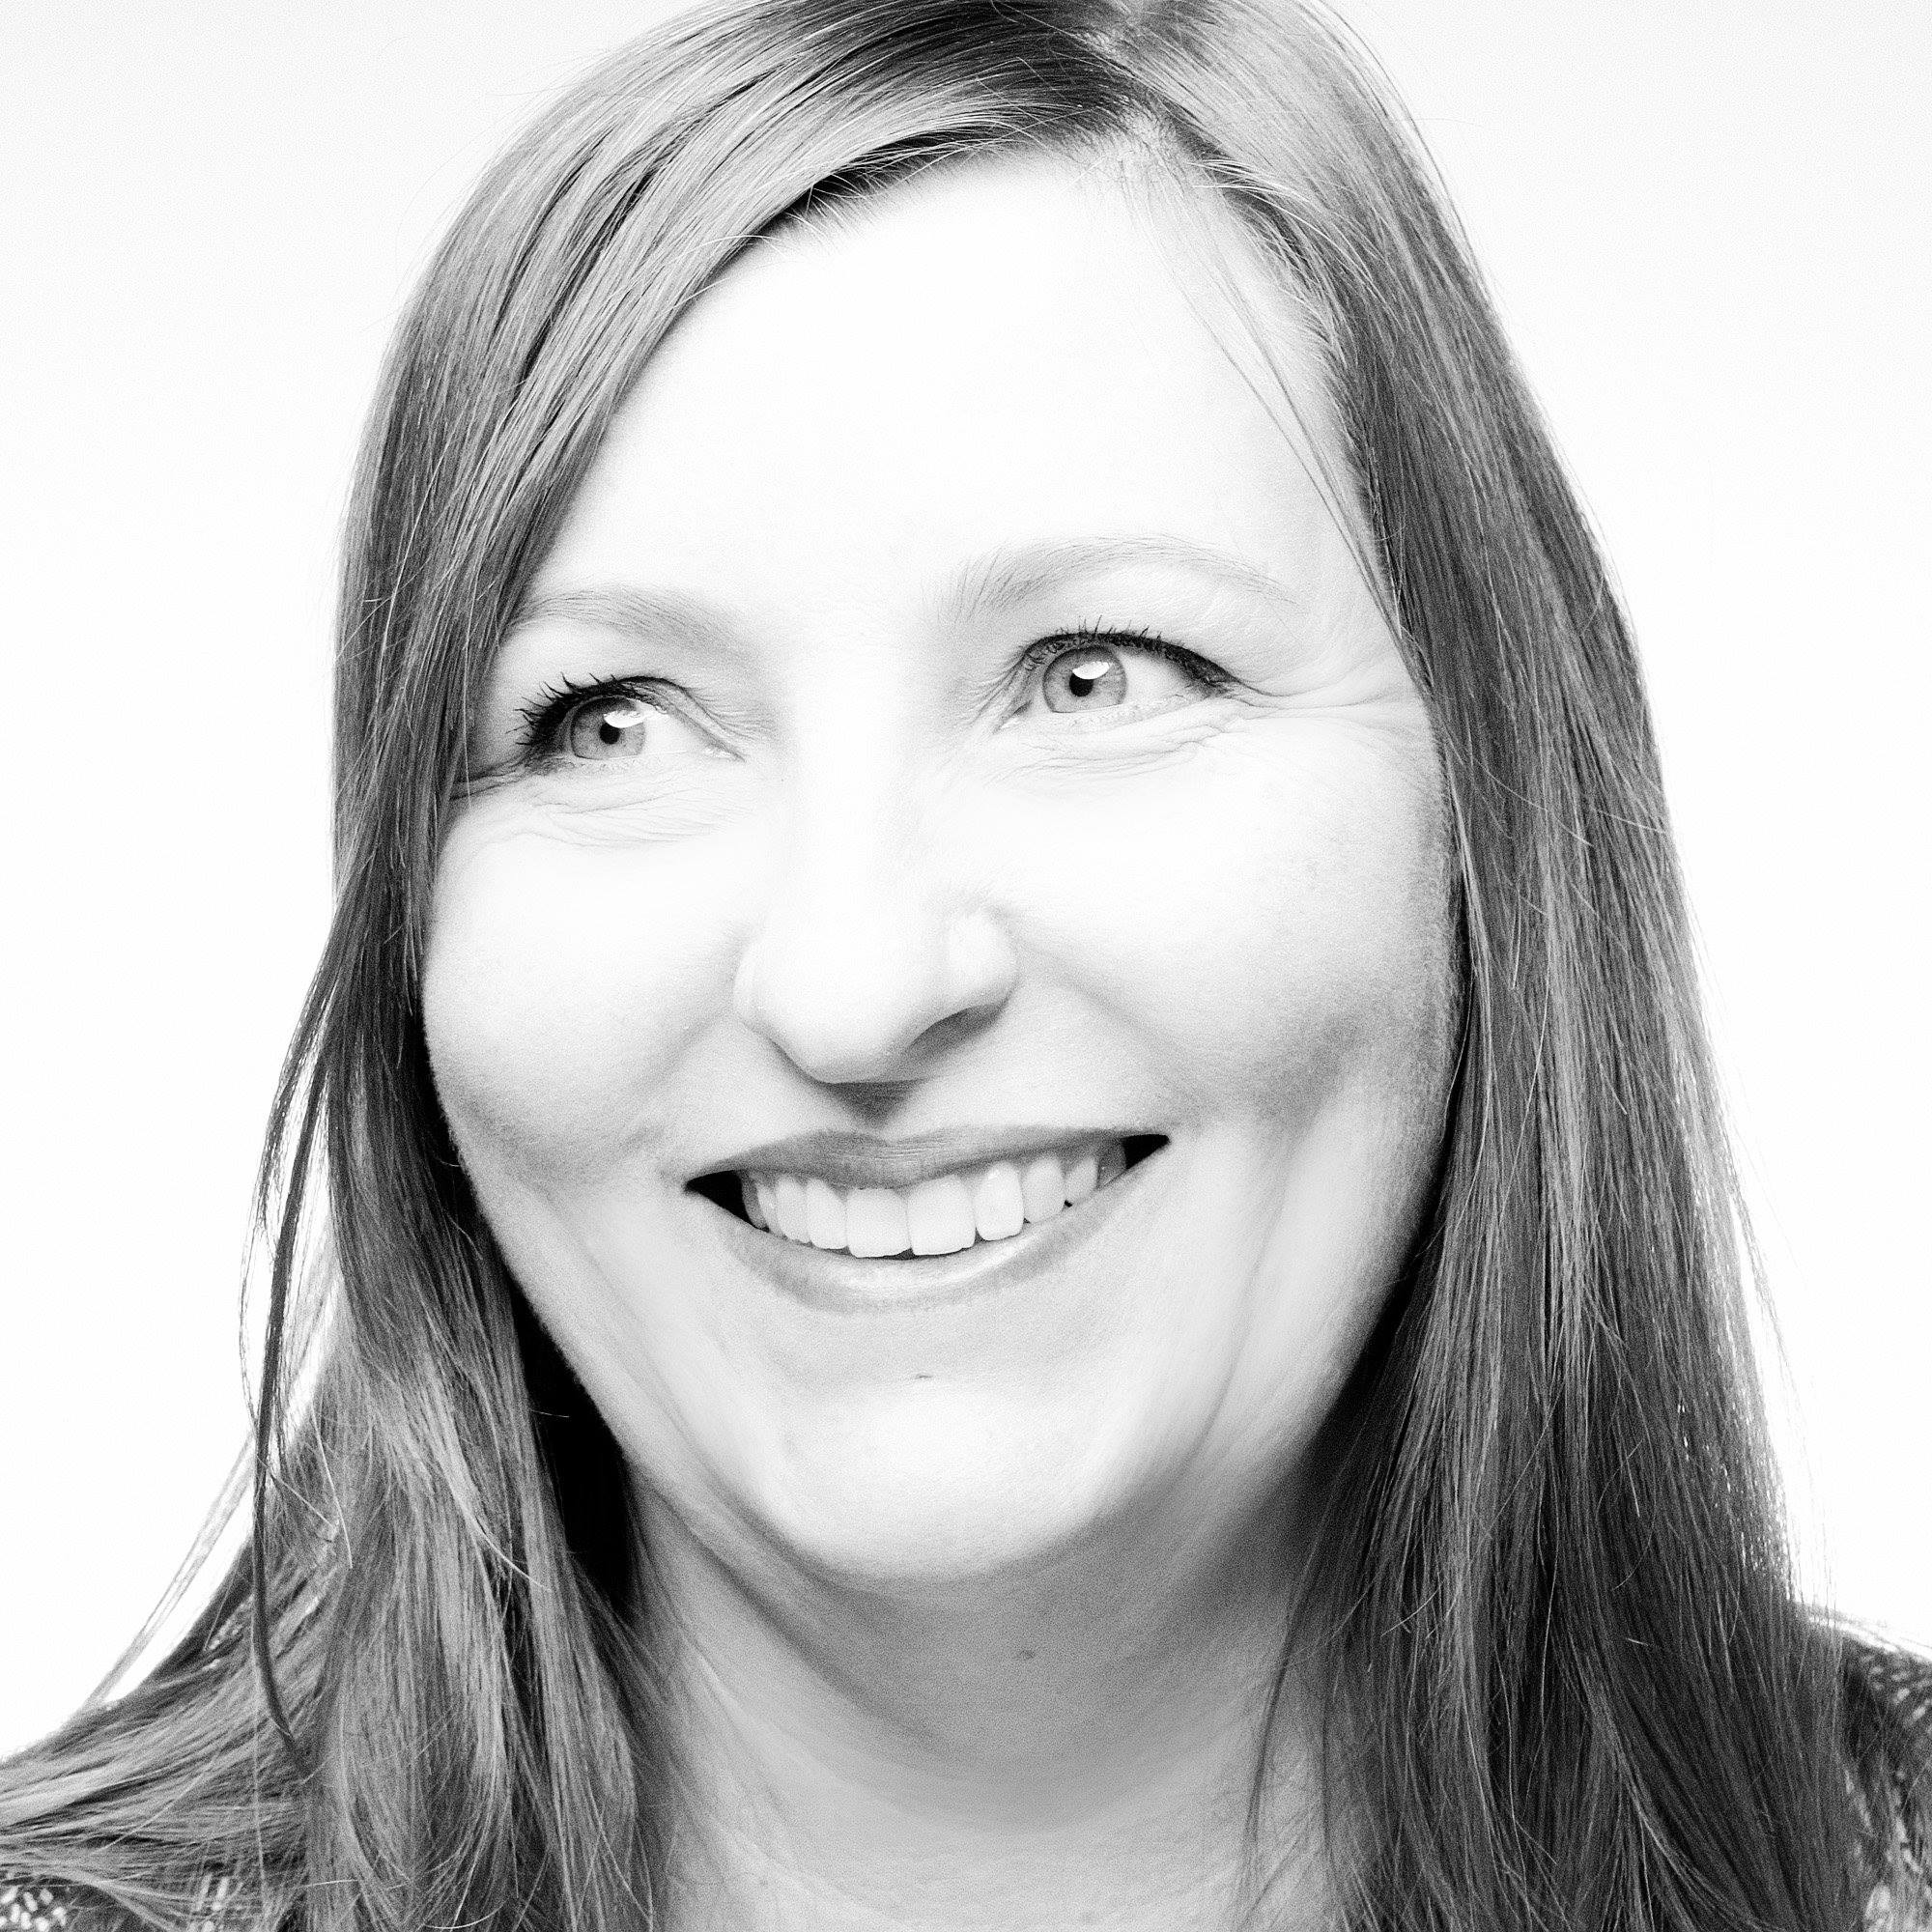 Alison Stansfield-Franks - Creative Director - Art and DesignAlison Stansfield-Franks heads up theArt + Design department at MORE and has been with the company since February 2017. Ali has a background in art direction and has worked on and overseen some of the most iconic FMCG Brands in the world. She has held senior roles in agencies like Y&R and Saatchi & Saatchi, where she was Regional Creative Director for IMEA (India, Middle-East & Africa). During her career she has been recognised by the top industry award shows including Cannes, D&AD, One Show and Clio's.